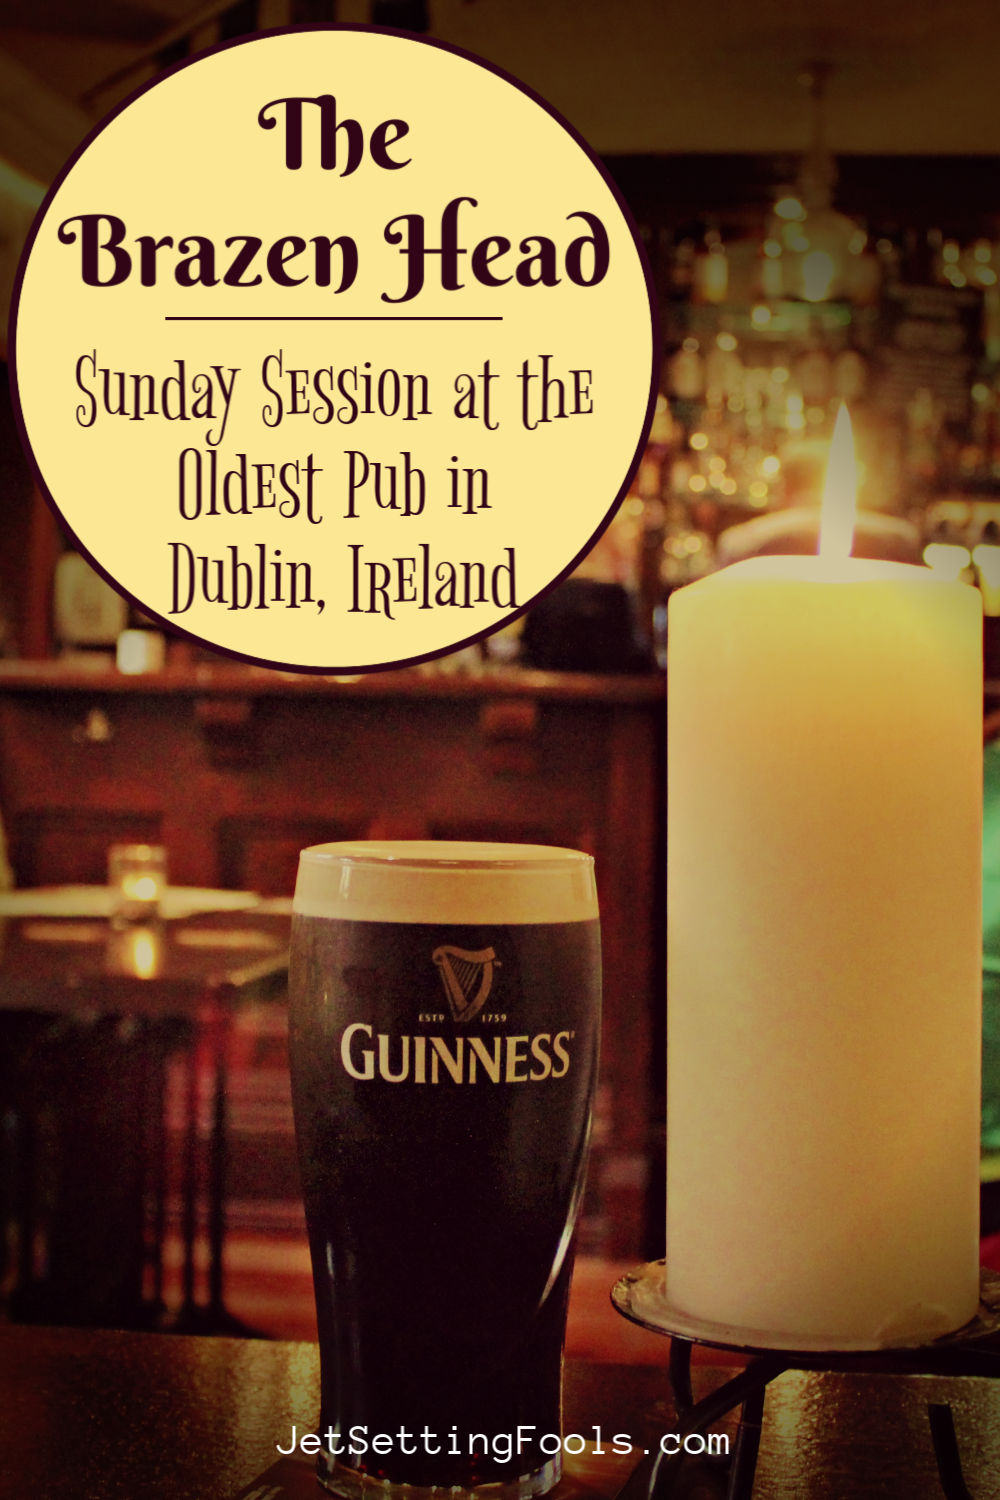 The Brazen Head Oldest Pub in Dublin, Ireland by JetSettingFools.com